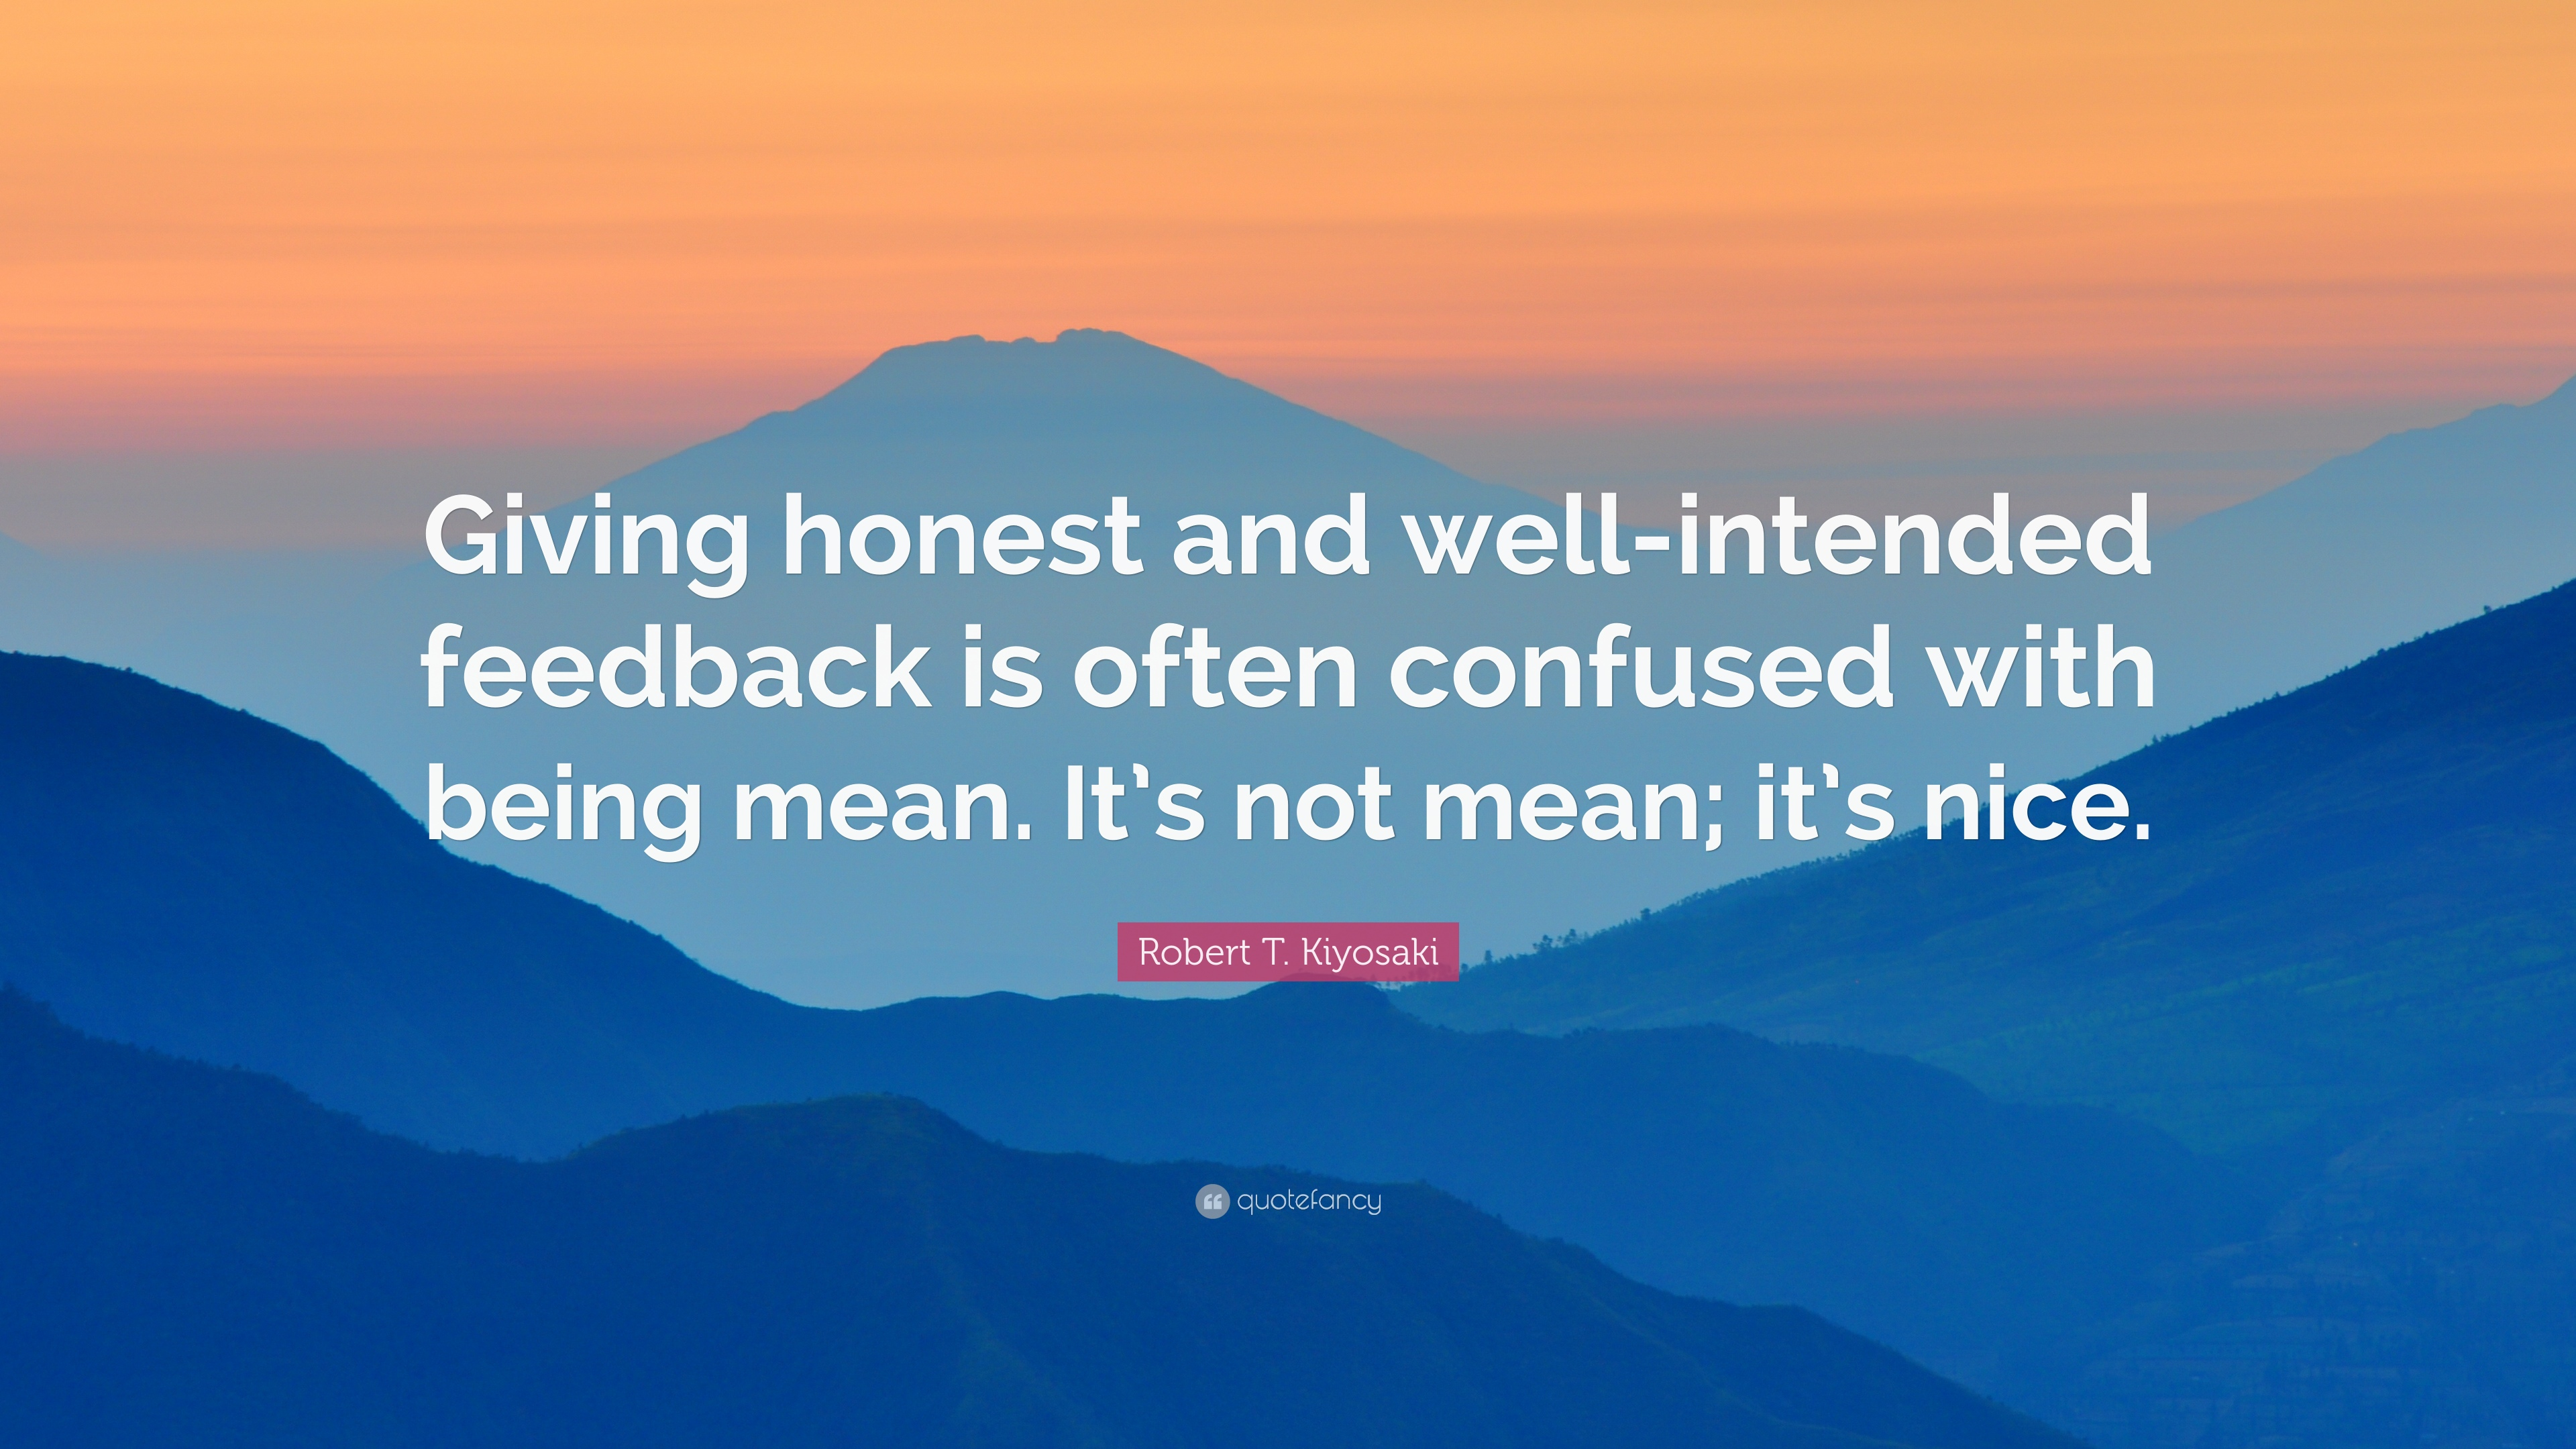 Quotes About Giving Honest Feedback (19 Quotes